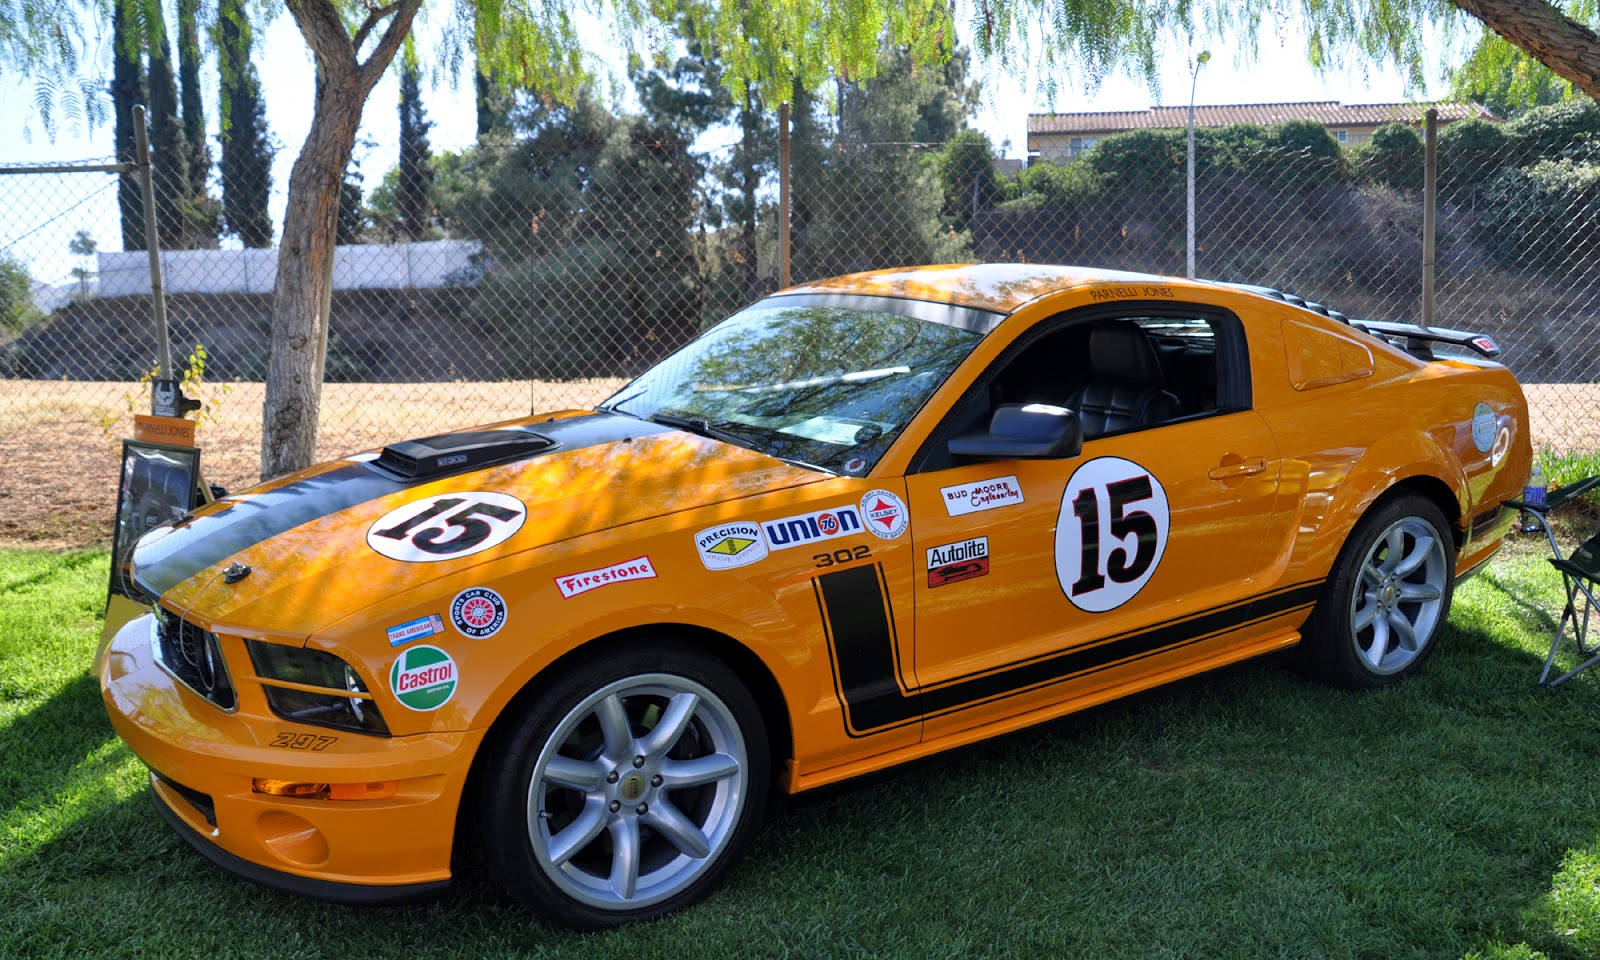 Just a car guy a parnelli jones edition mustang